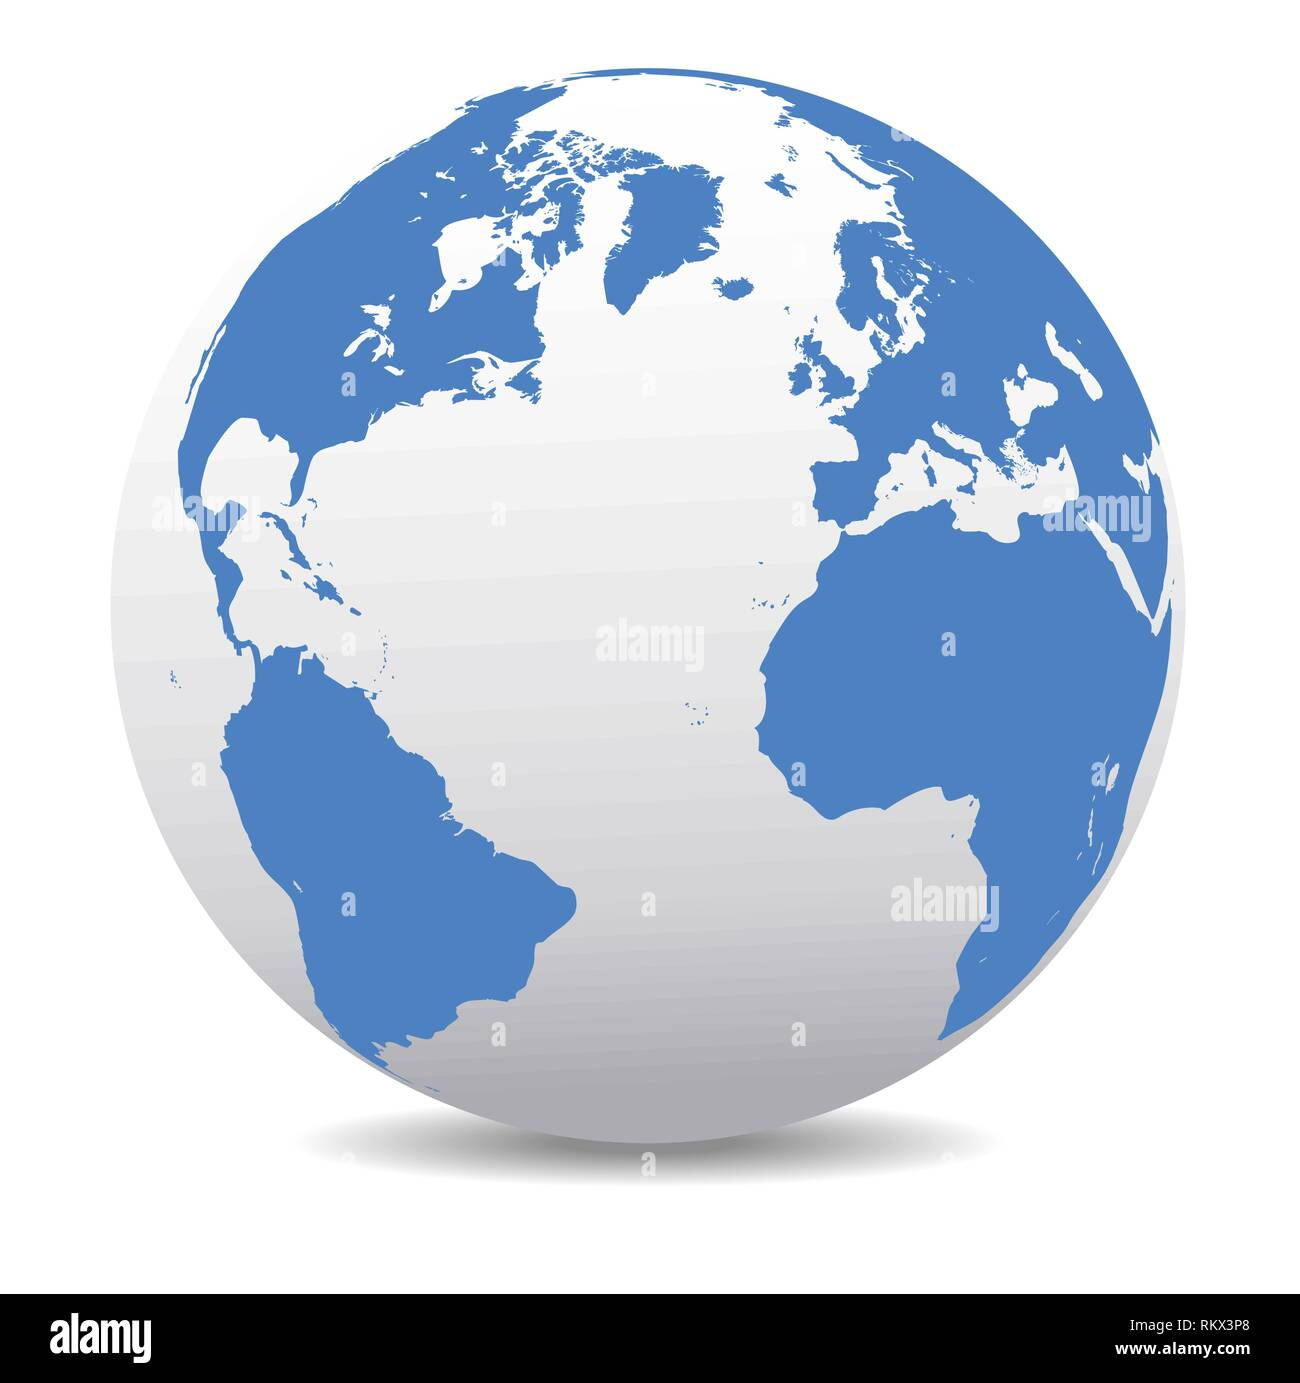 Europe, North, South America, Africa Global World, Vector Map Icon of the Earth - Stock Vector